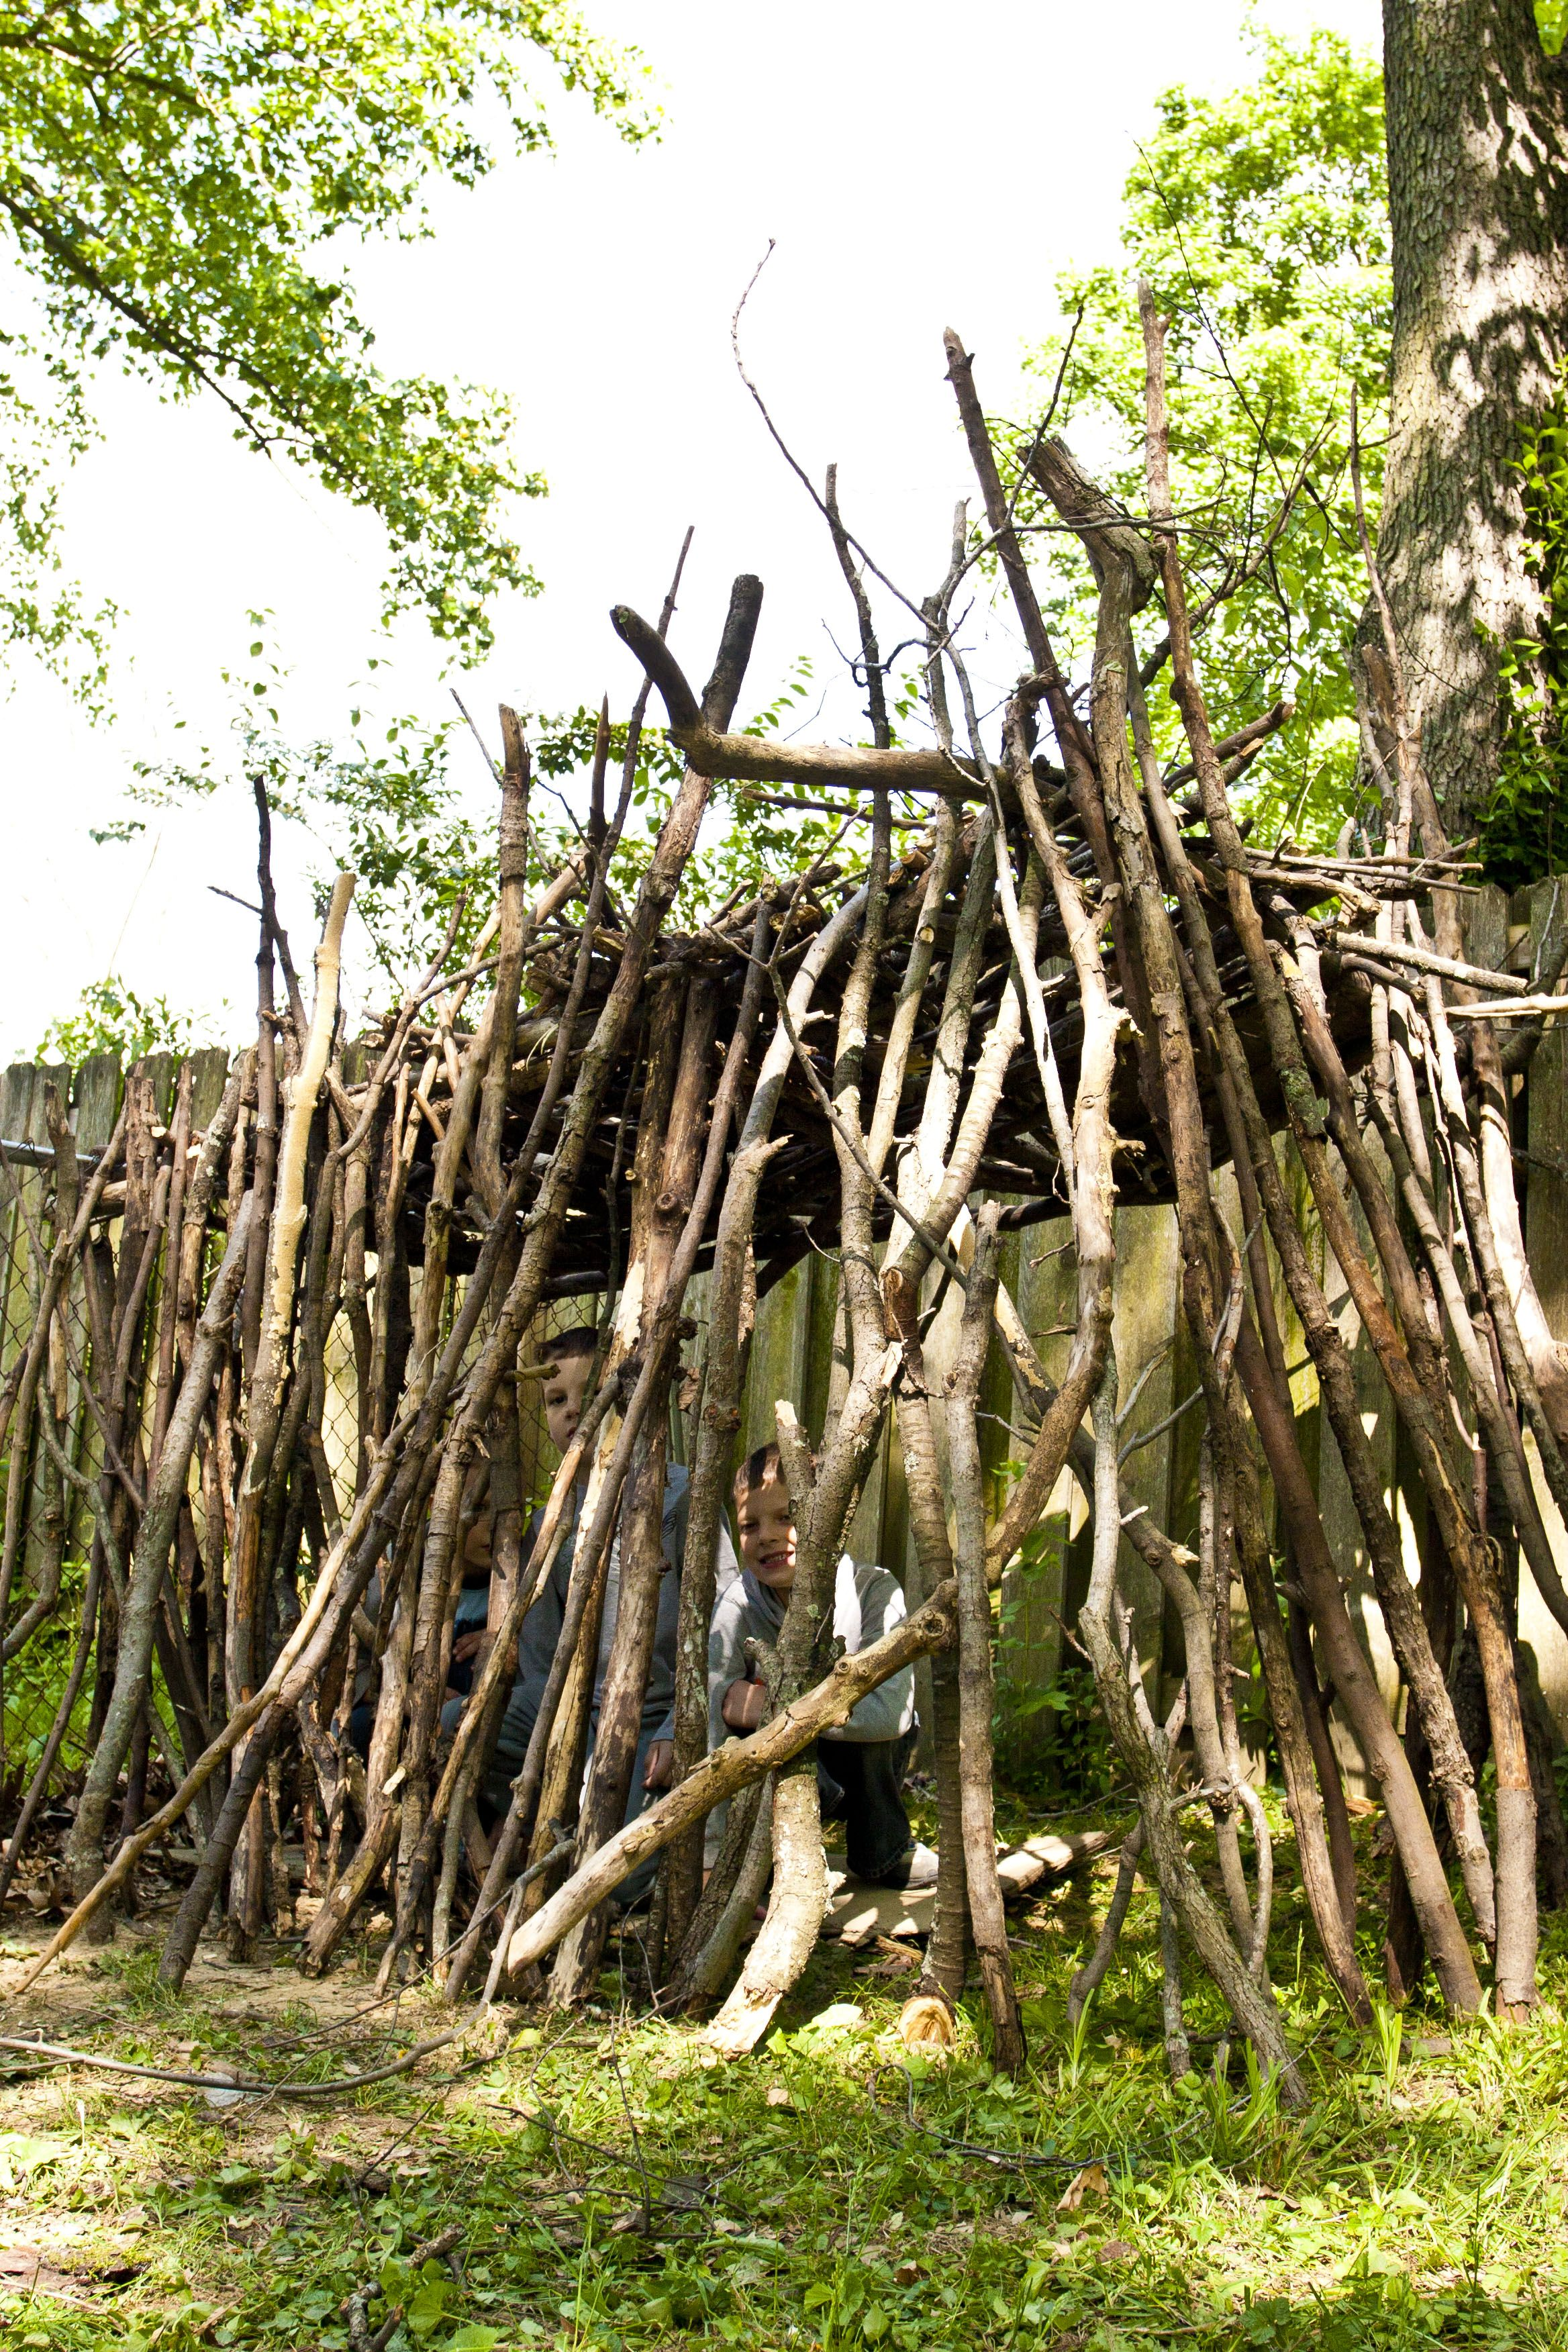 build a fort with sticks - Google Search